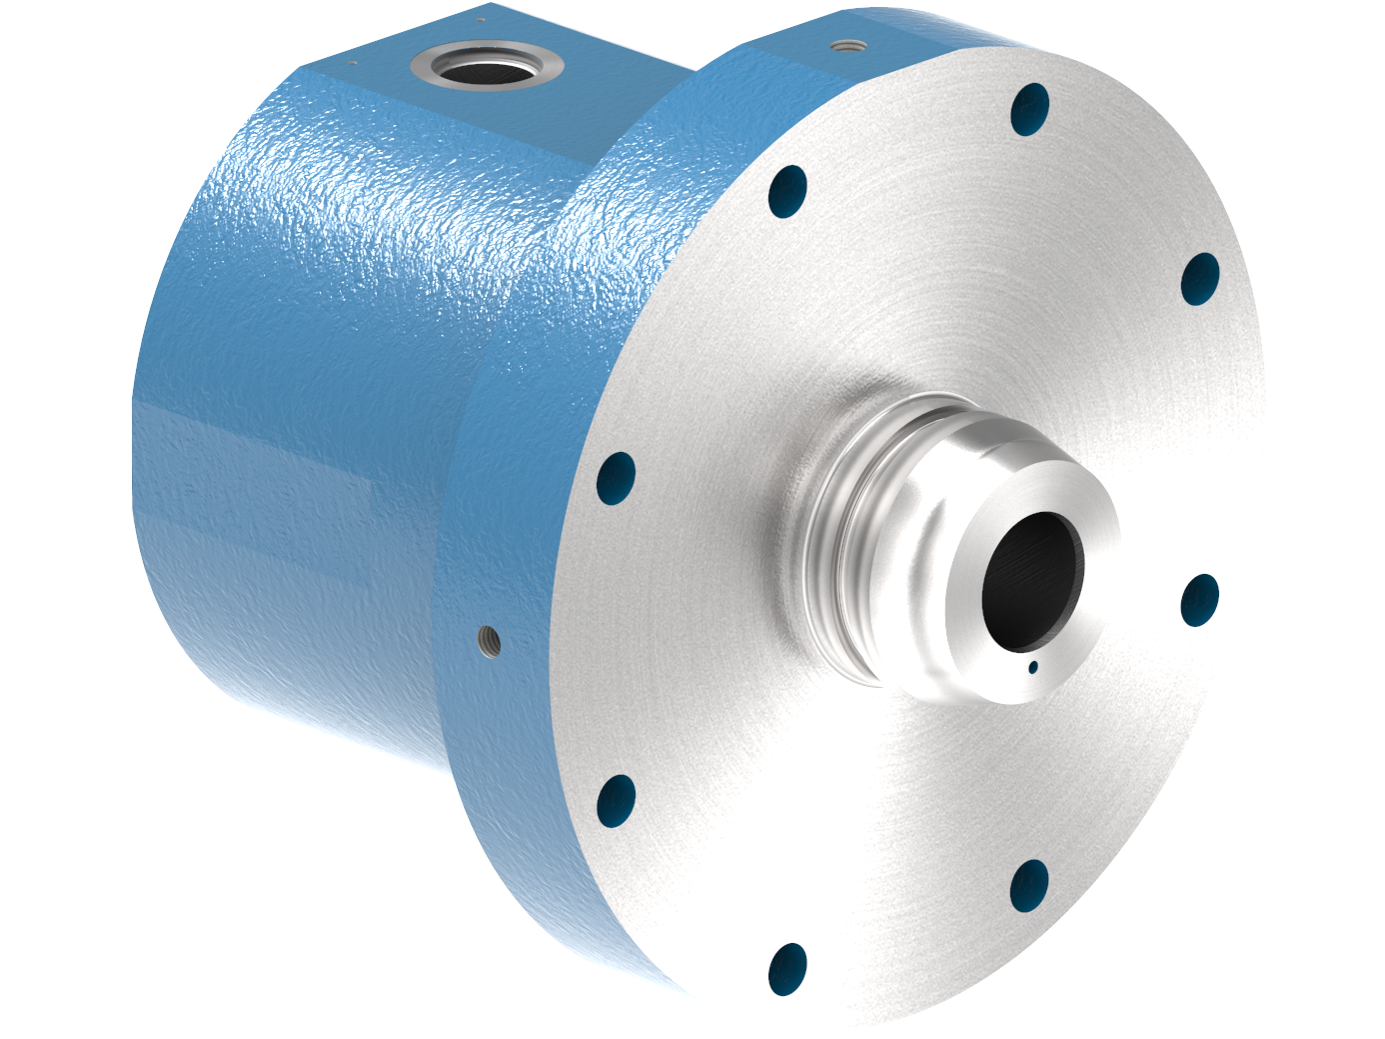 A rendering of a Cylinder Part from a Small Line Compressor